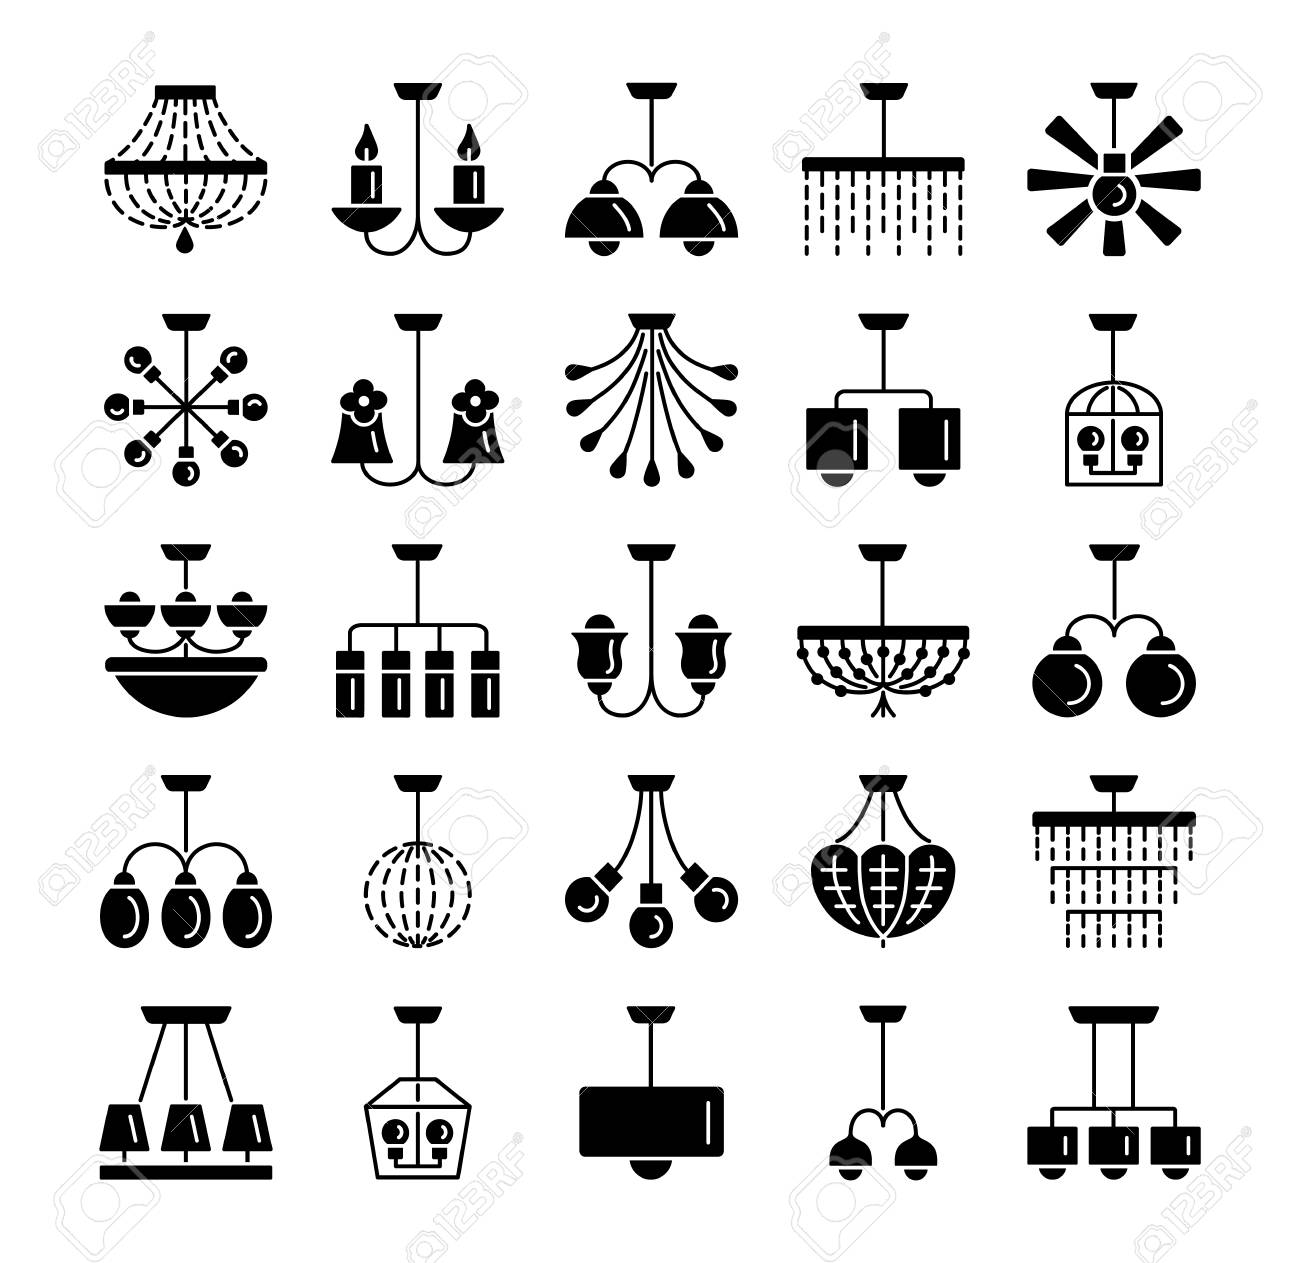 Modern Vintage Ceiling Lamps Set Of Hanging Light Fixtures Royalty Free Cliparts Vectors And Stock Illustration Image 106229297